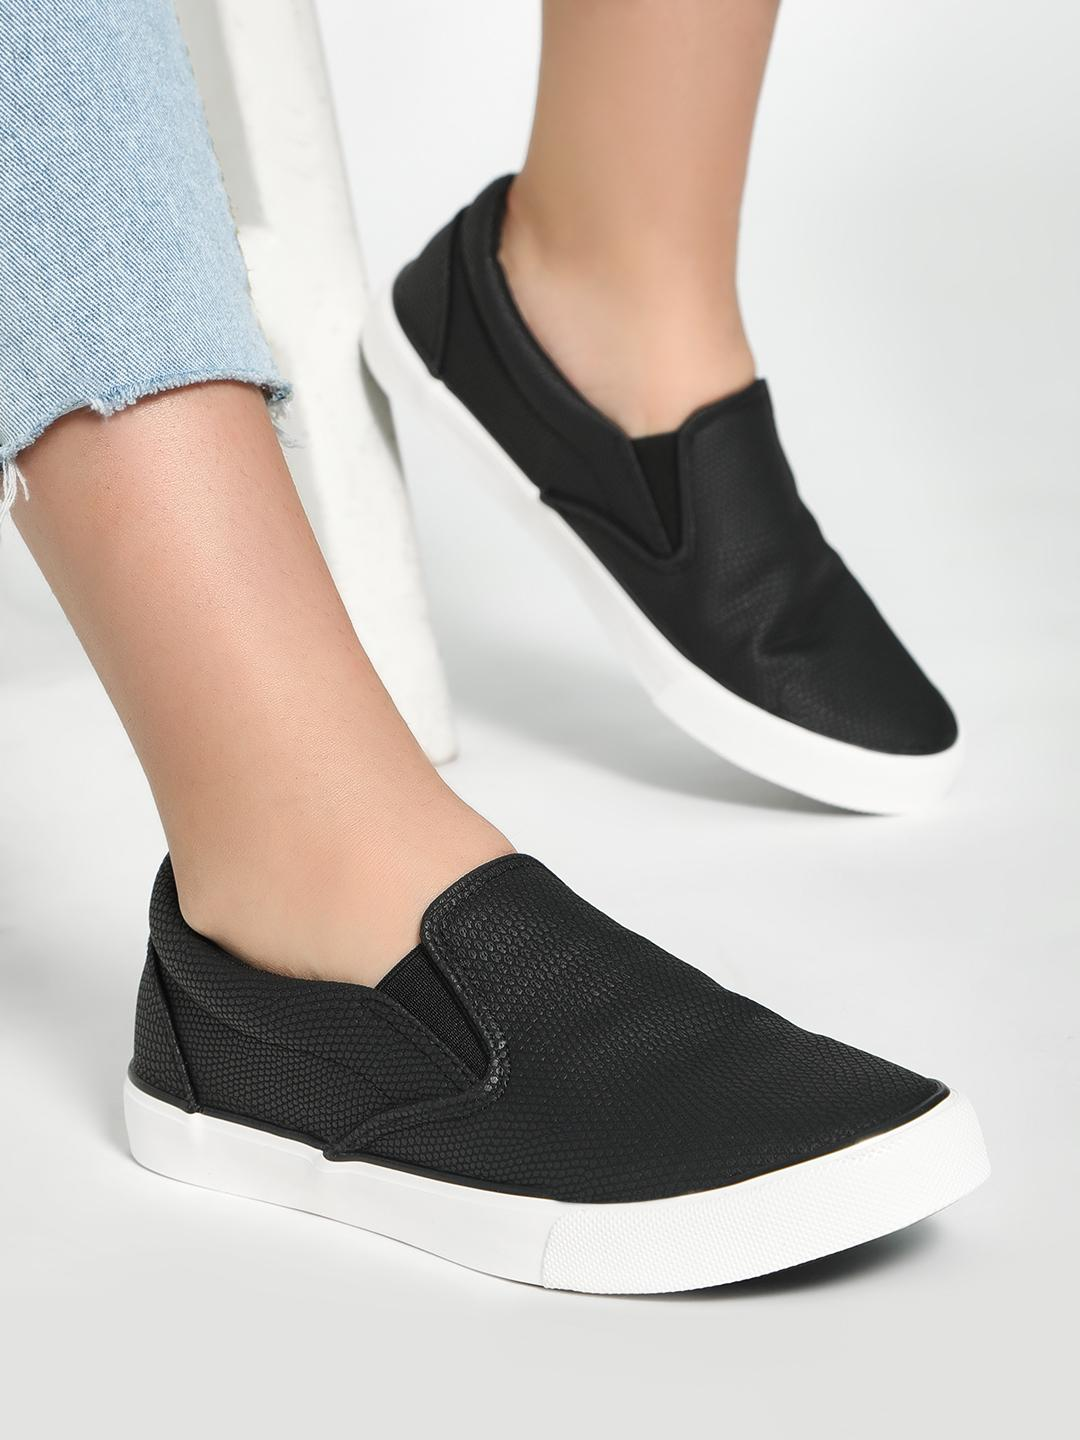 New Look Black Textured Contrast Flat Sole Shoes 1